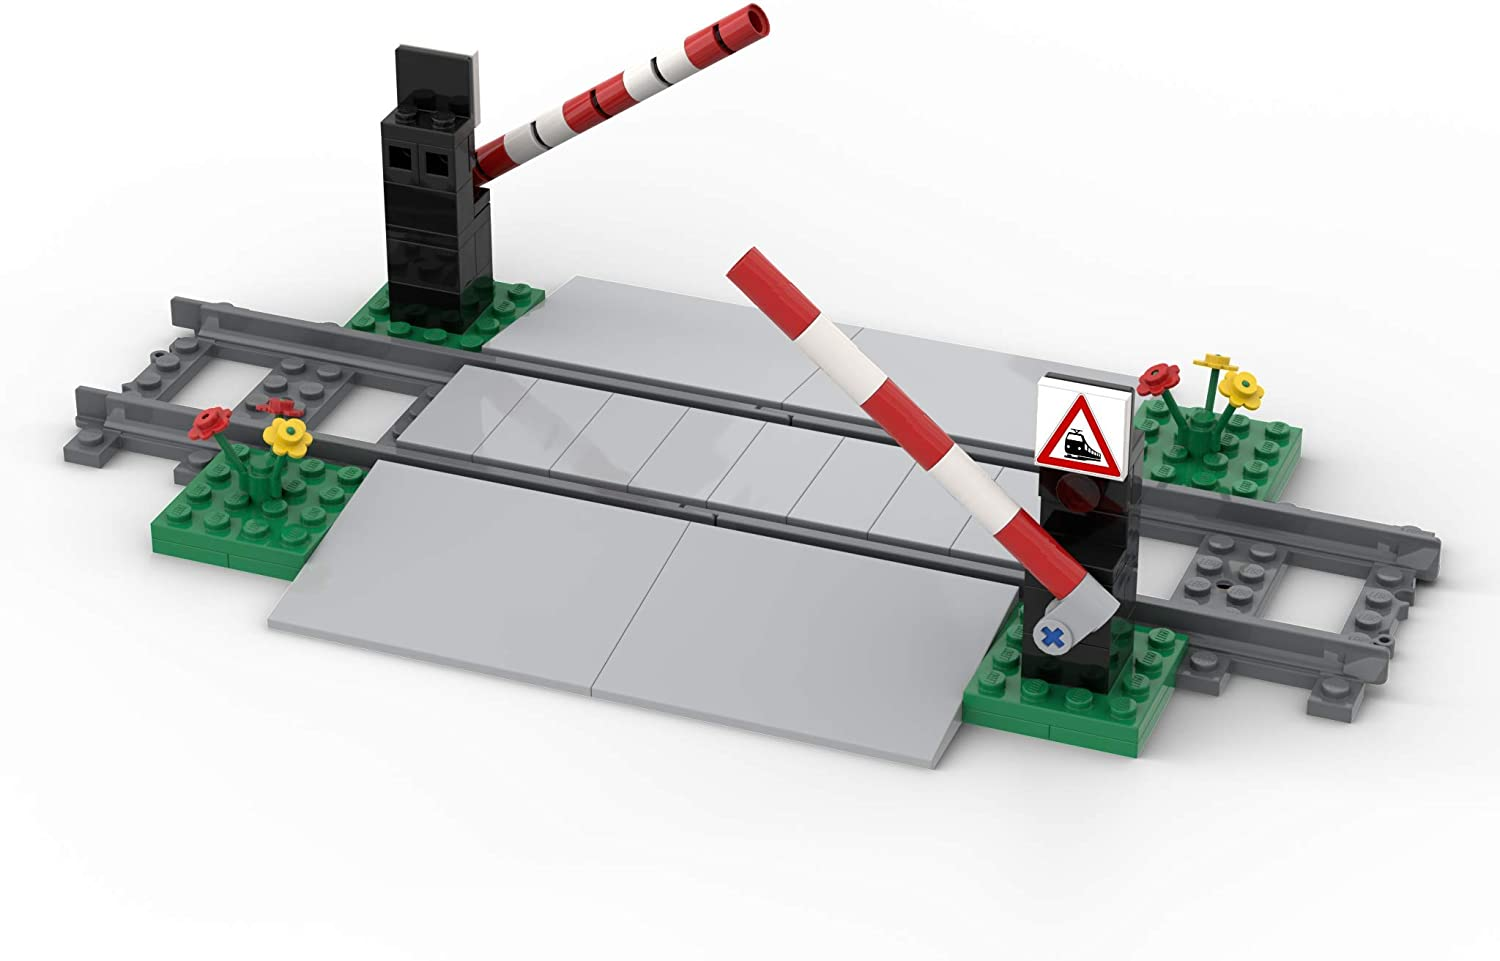 LEGO Level Crossing